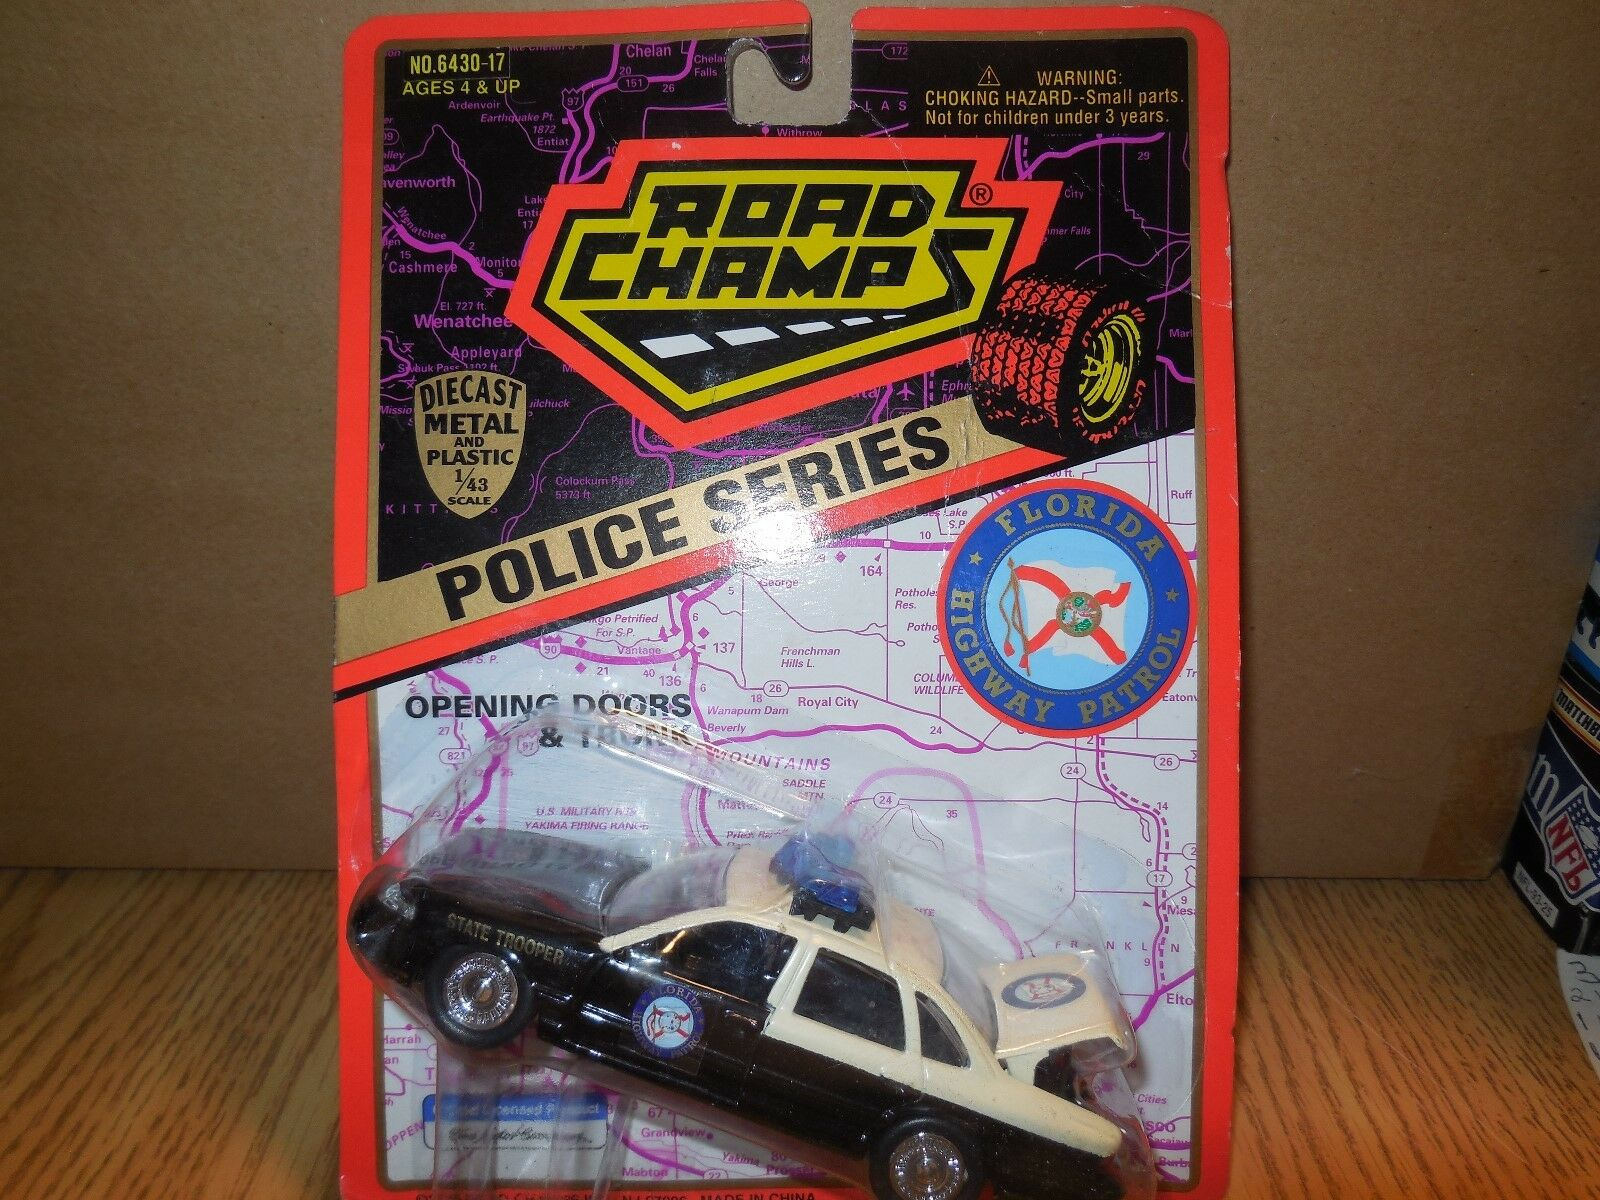 1 1995 road champs florida highway patrol patrol patrol  car - 1 43 scale 517162